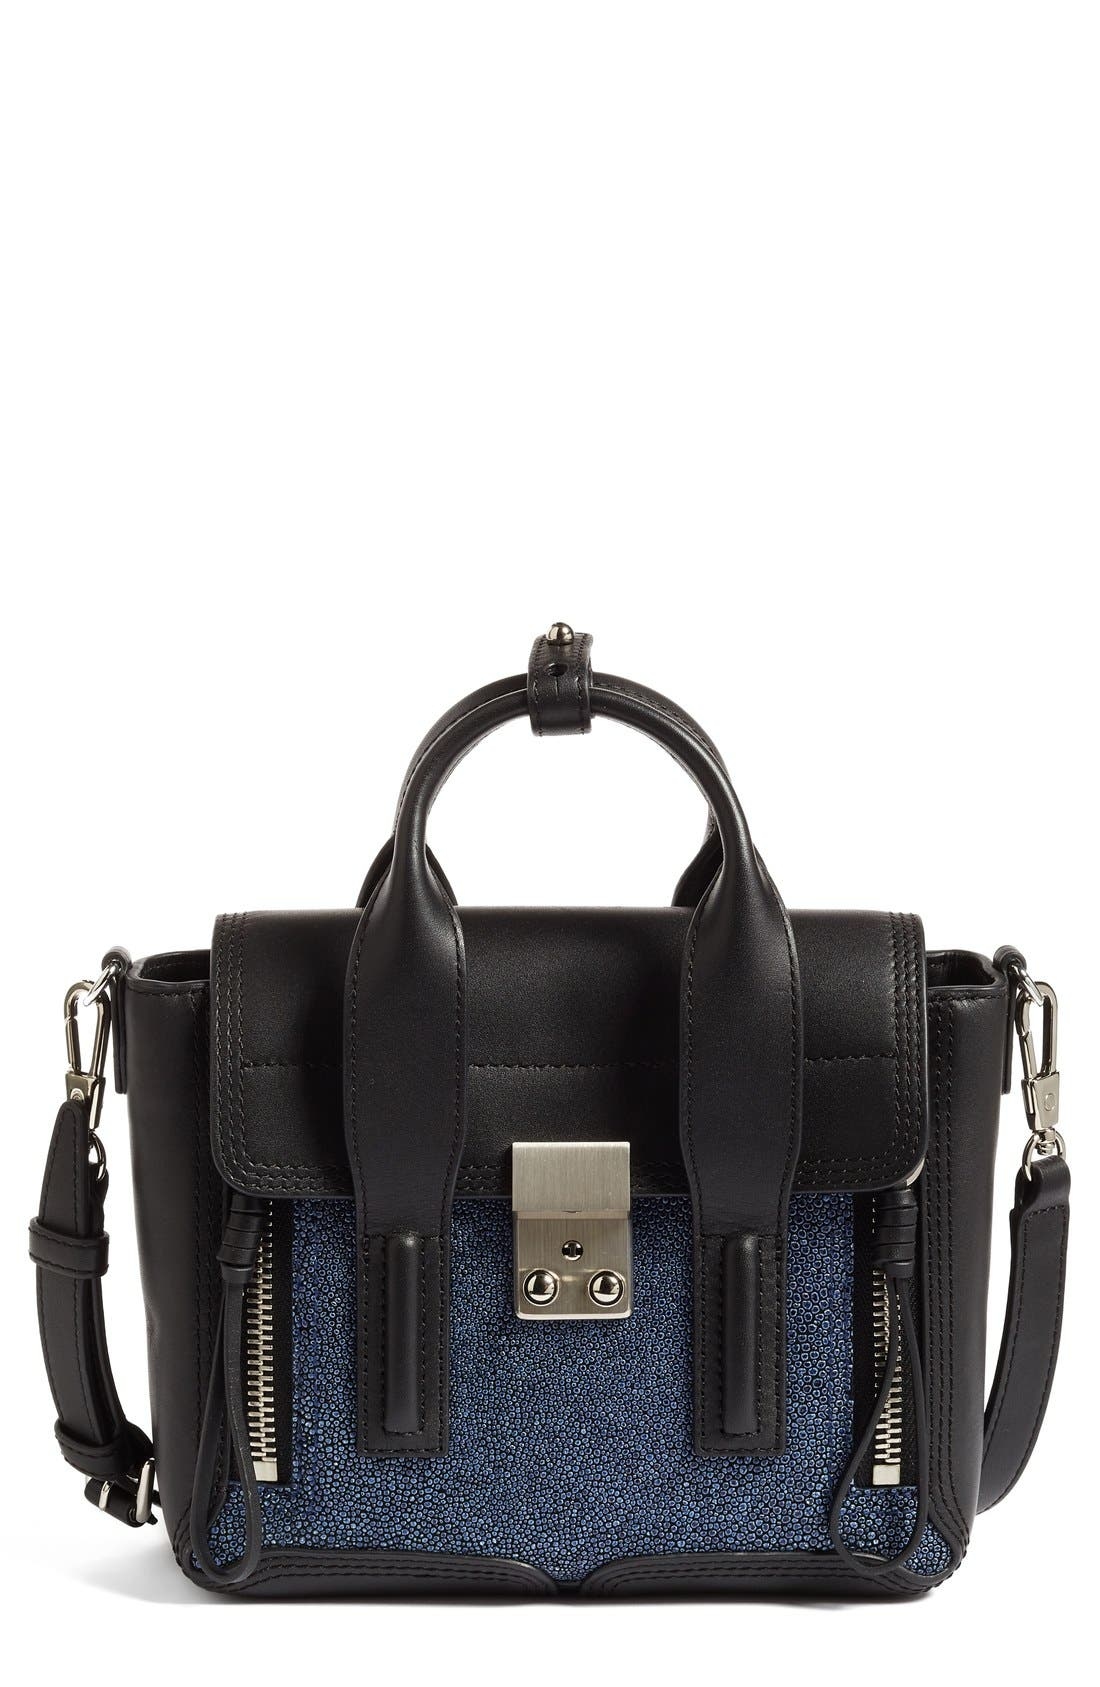 Main Image - 3.1 Phillip Lim Mini Pashli Leather Satchel